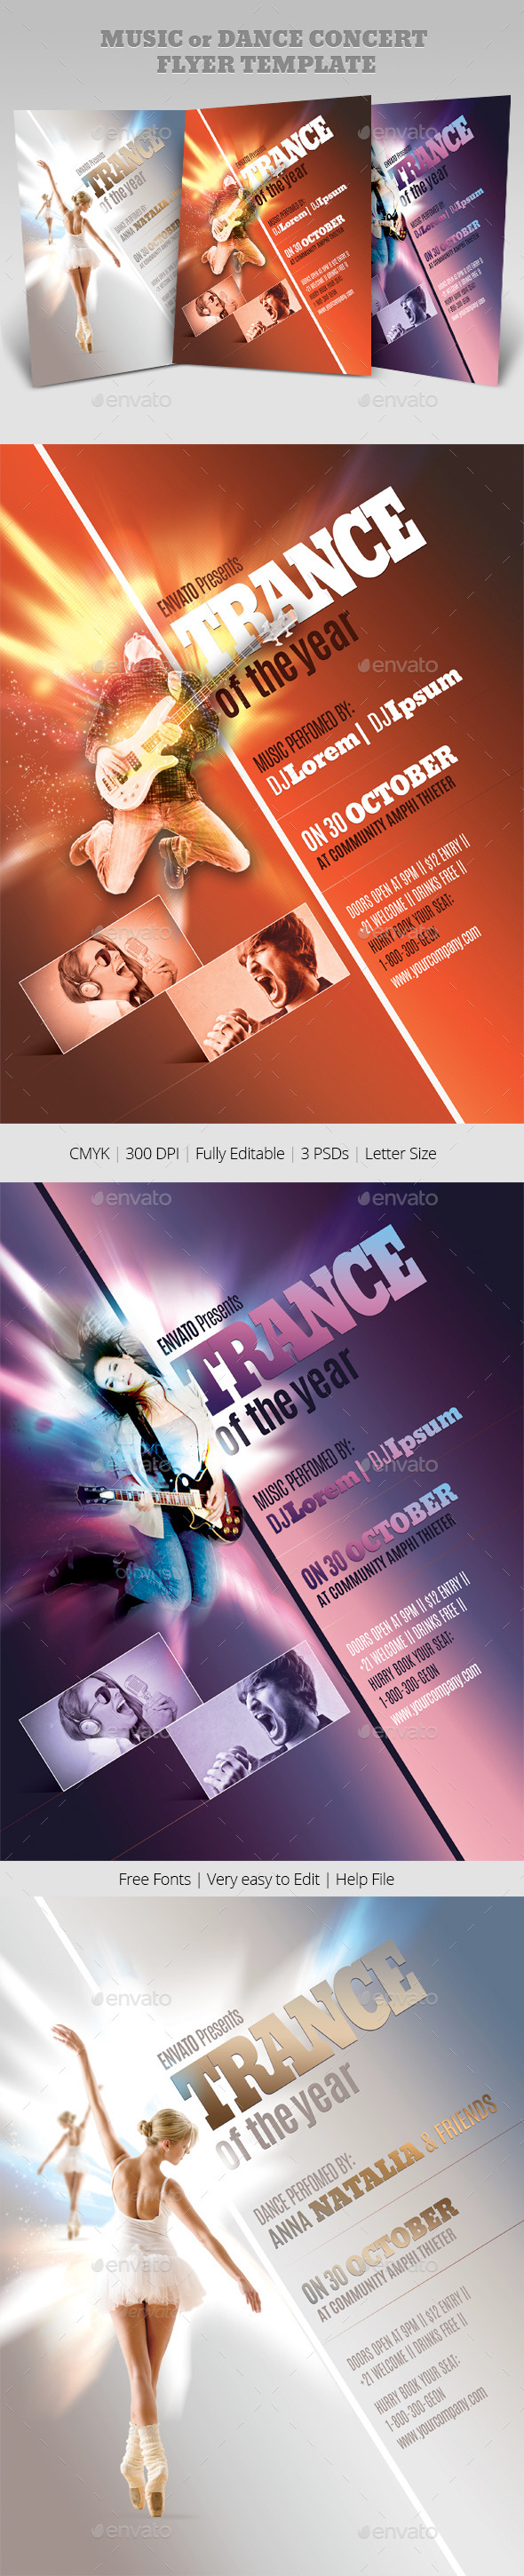 GraphicRiver Music or Dance Concert Flyer Templates 10538618